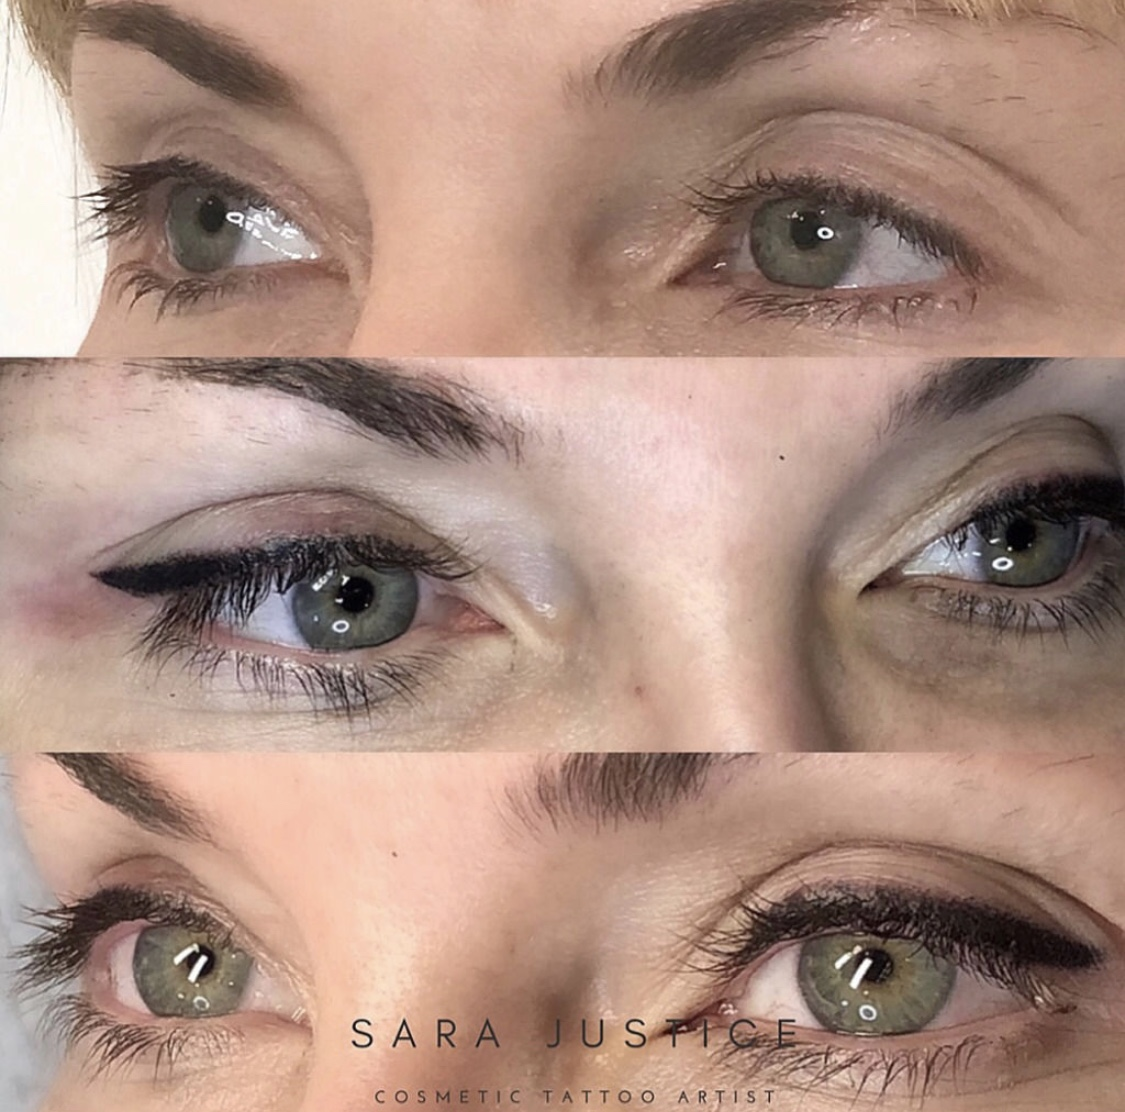 An eyeliner tattoo that you don't have to worry about | Sara